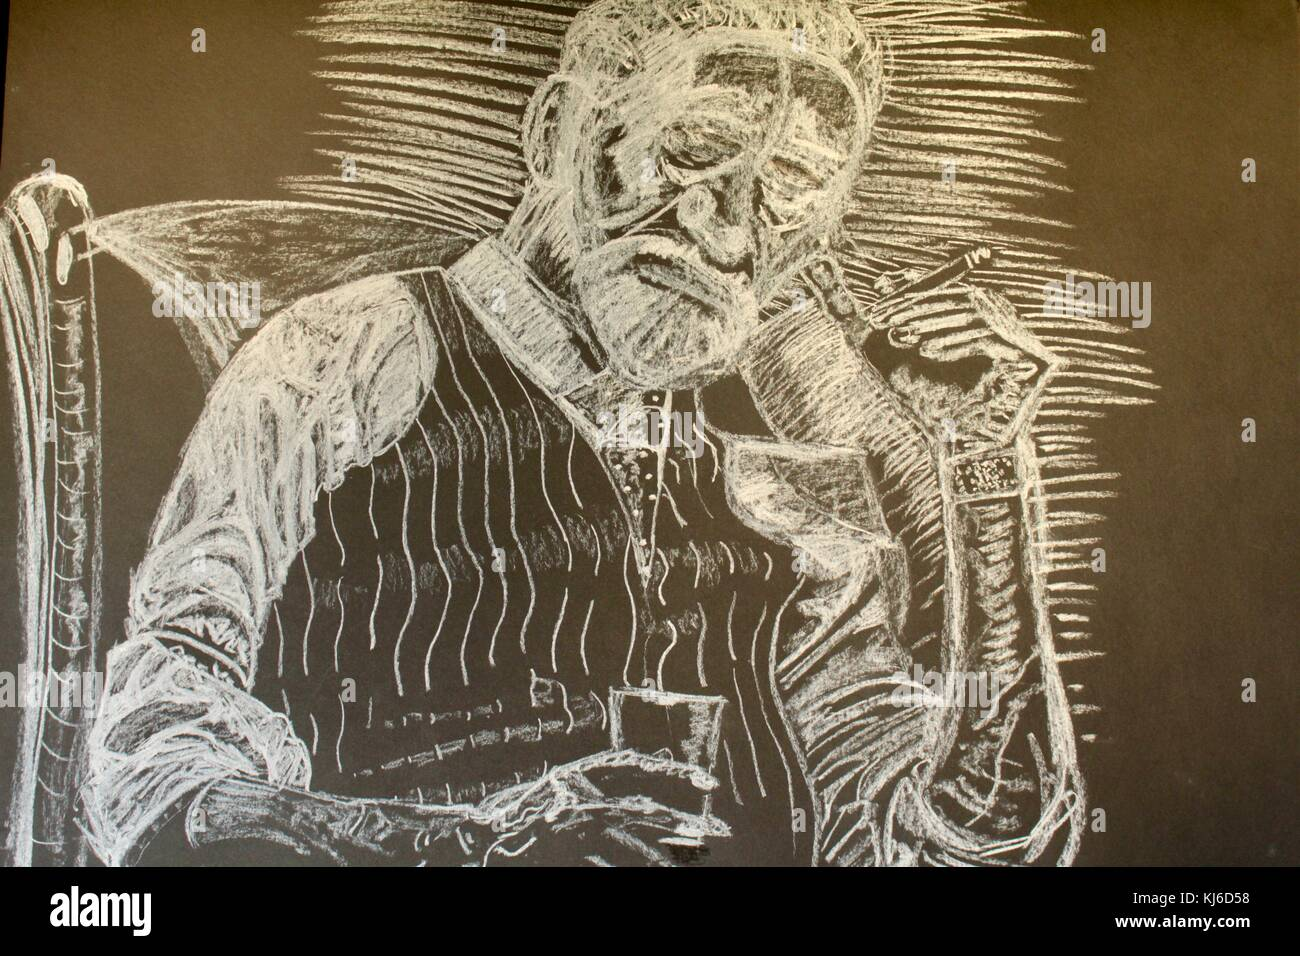 White chalk drawing on blackboard of old man with whisky glass and cigar - Stock Image